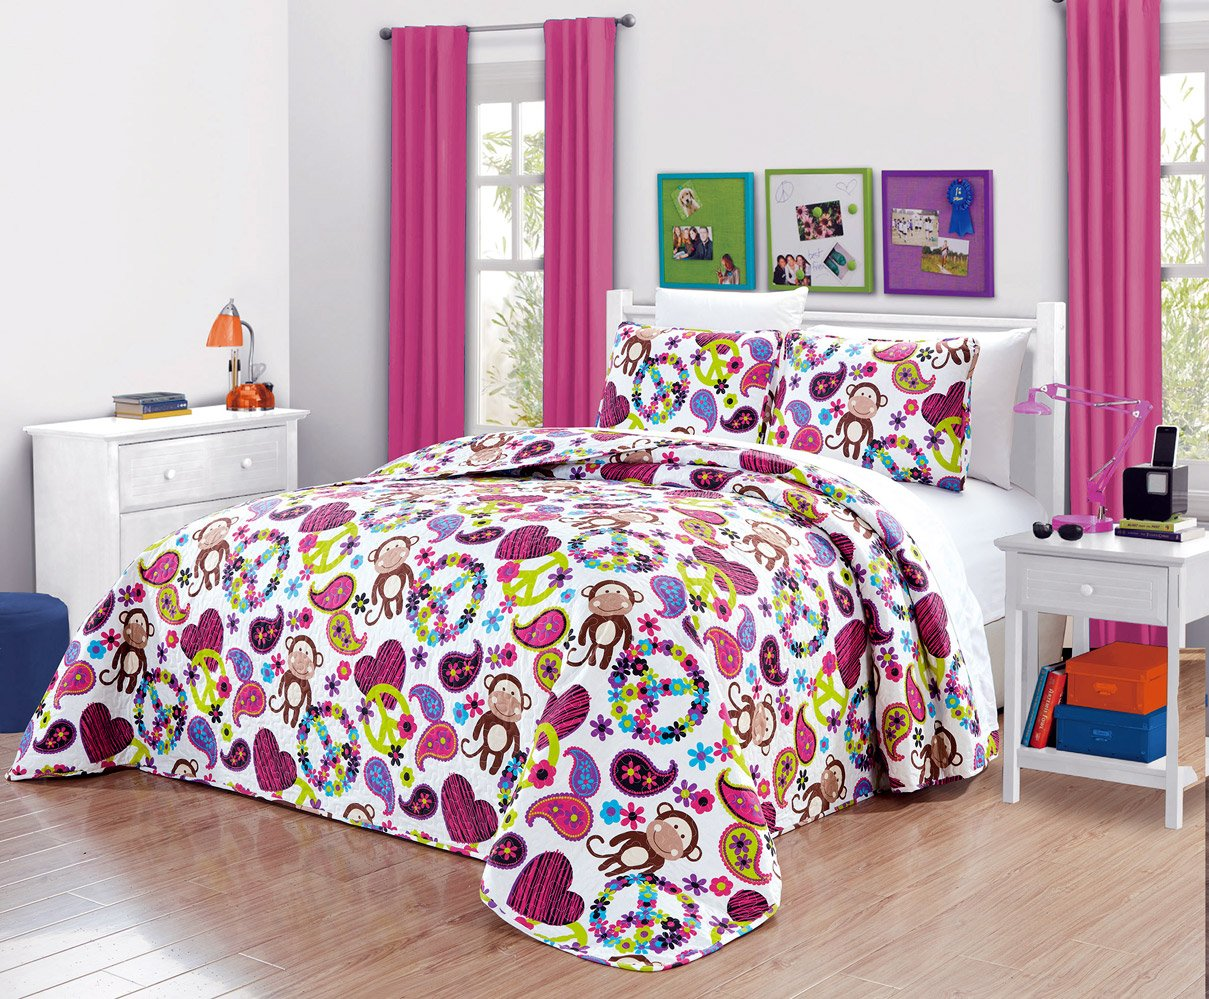 Girls Kids Quilts-FABIAN MONKEY Tween Teen Dream Coverlet. (Double) FULL SIZE Bedspread set -Peace, Hearts-Hot Pink, Turquoise Blue, Purple, Black and White by Grand Linen